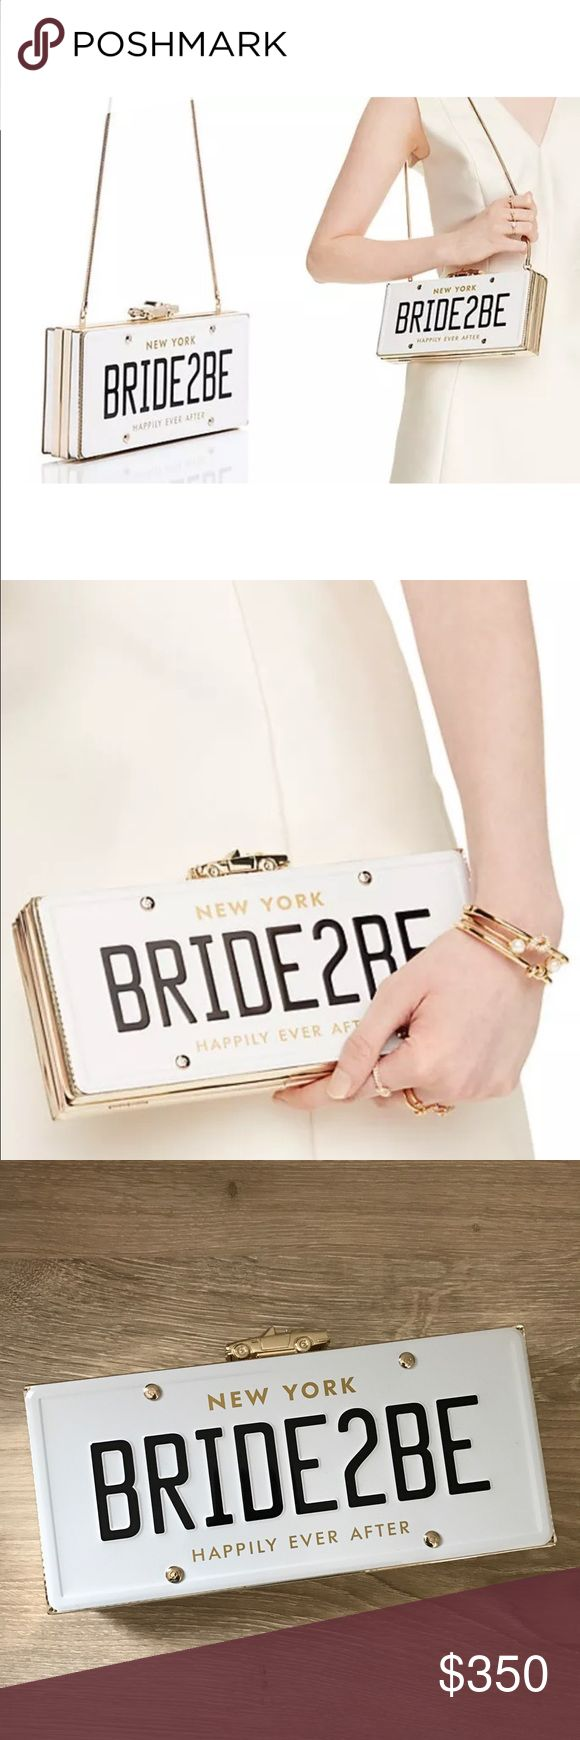 "NWT BRIDE2BE Kate Spade Clutch From the Wedding Belles collection by kate spade new york, the BRIDE2BE clutch features:  -metallic TPU  -clasp closure  -zip compartment and credit card slots inside  -hidden chain strap  approx. 4.5(W) x 10(W) x 1.5(D)""; 15"" strap drop  MSRP $398  PERFECT for the rehearsal dinner, bridal shower or bachelorette party! kate spade Bags Clutches & Wristlets"